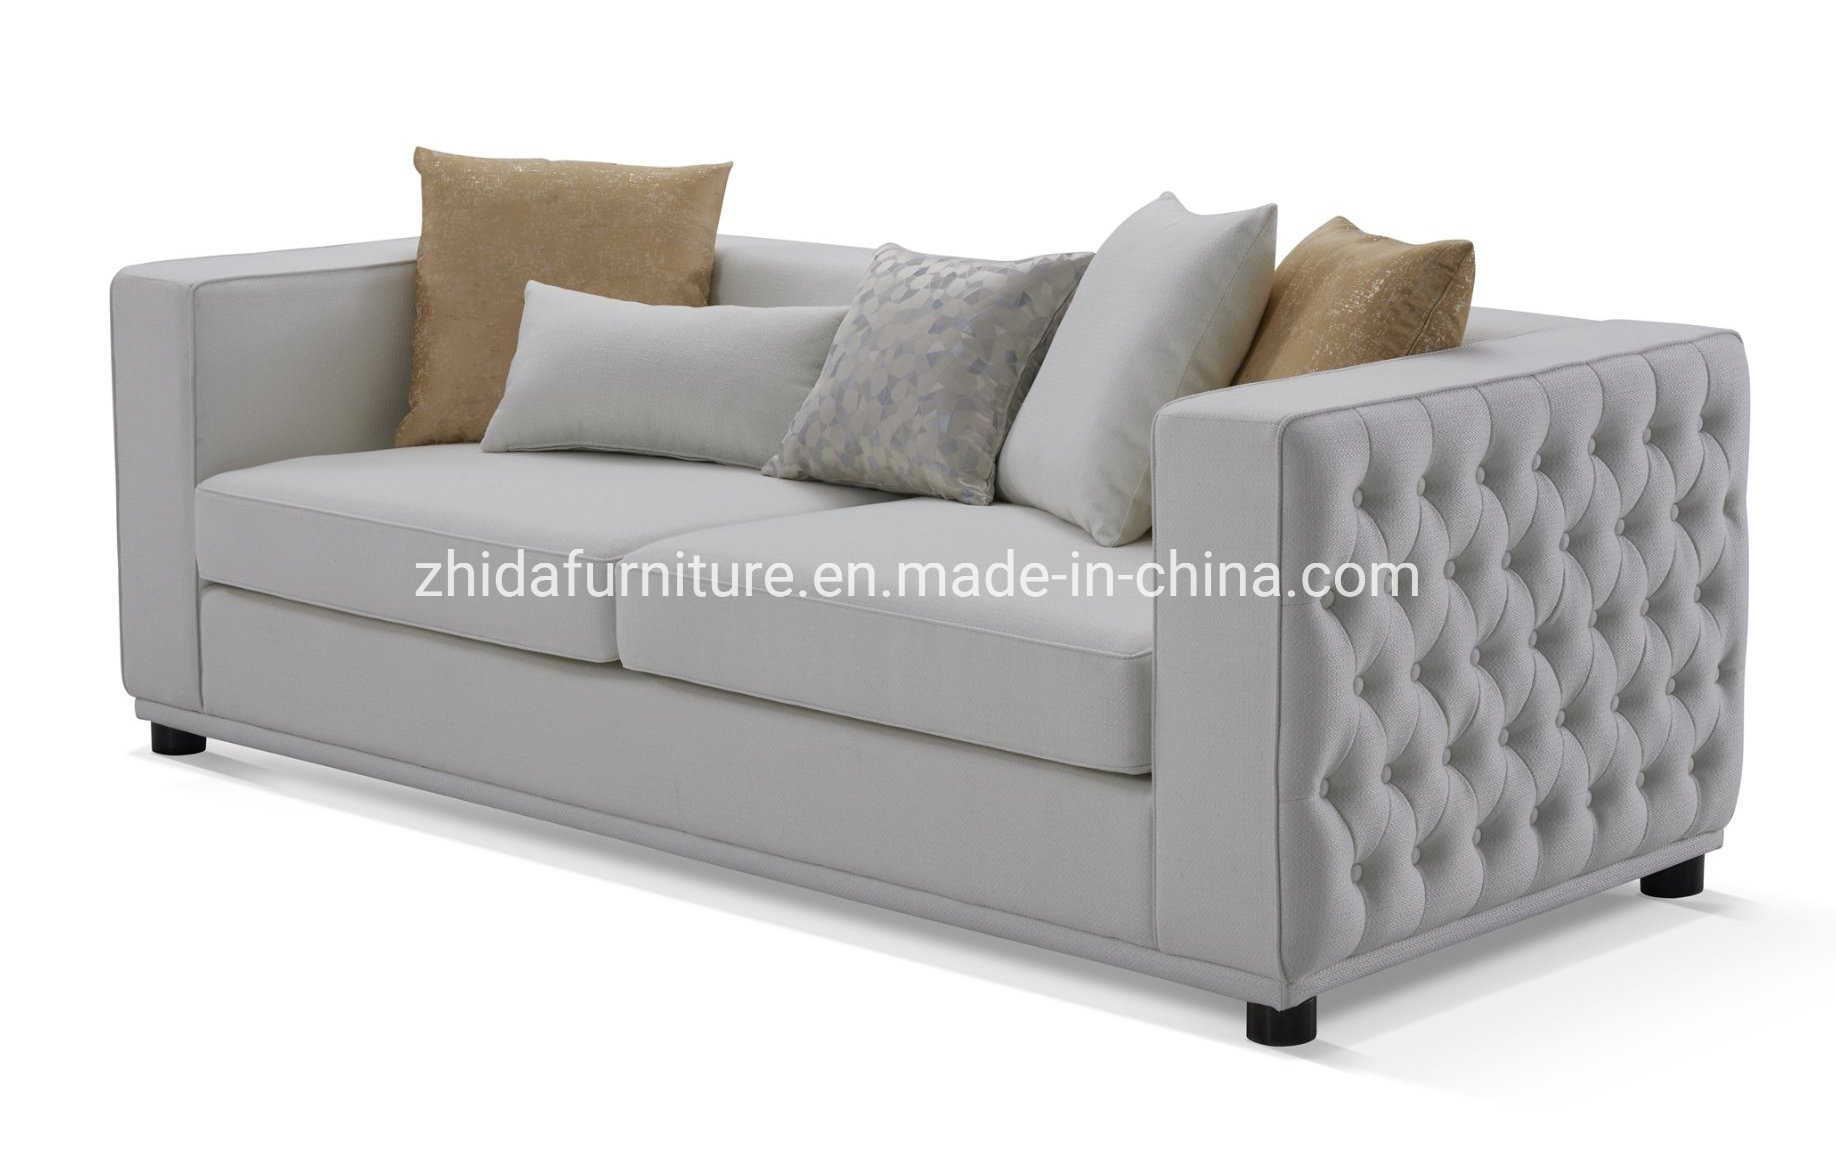 Chinese Furniture Chesterfield Sectional Sofa Fabric Sofa Living Room Sofa Chinese Sofa Chesterfield Sofa